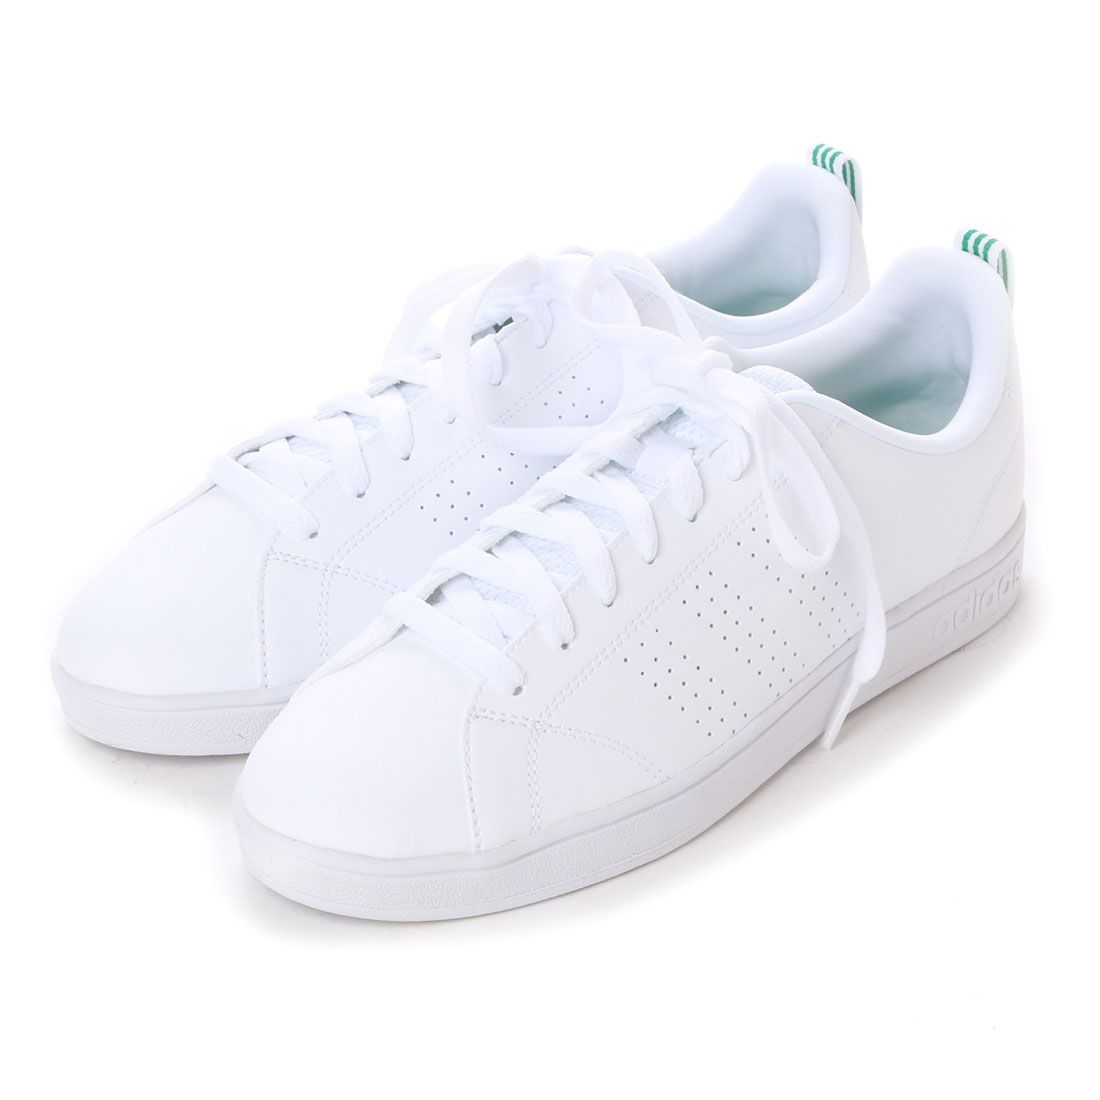 3db3887f199b Sepatu Wanita Adidas Neo Advantage Clean White List Green F99251 Sneakers  Shoes